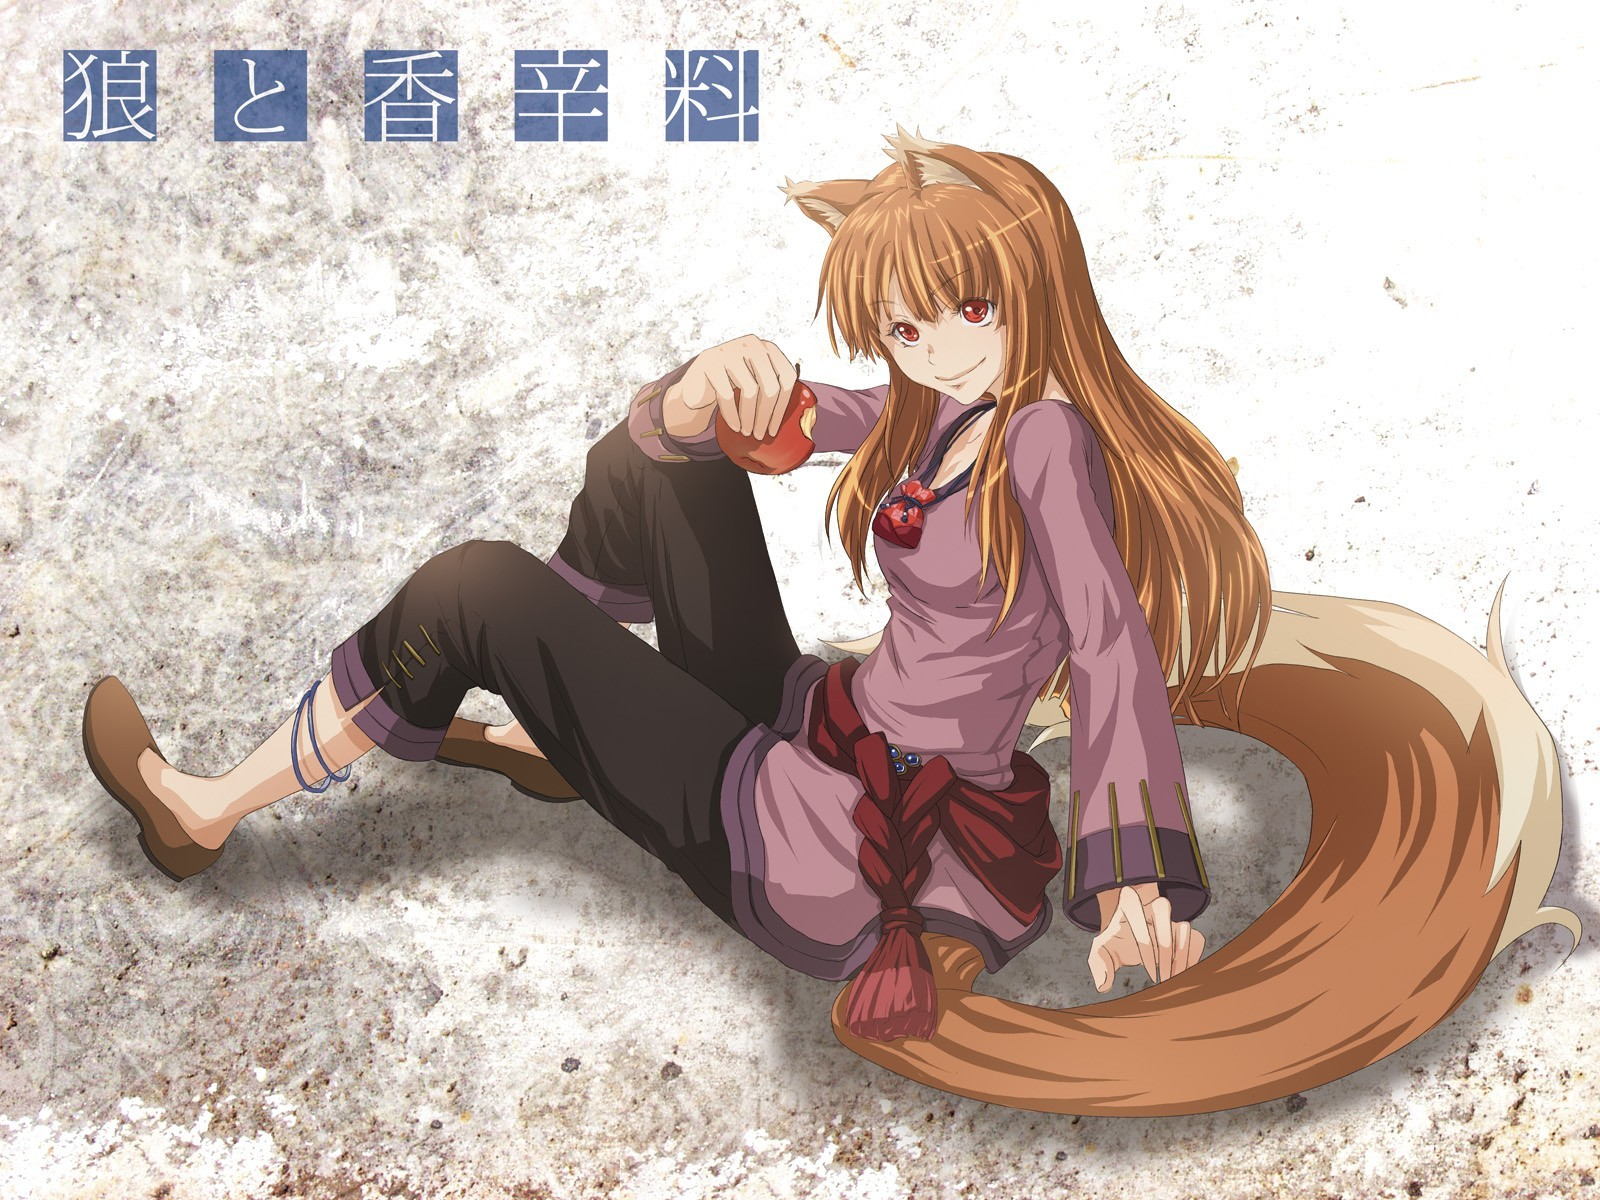 spice and wolf Holo HD Wallpaper